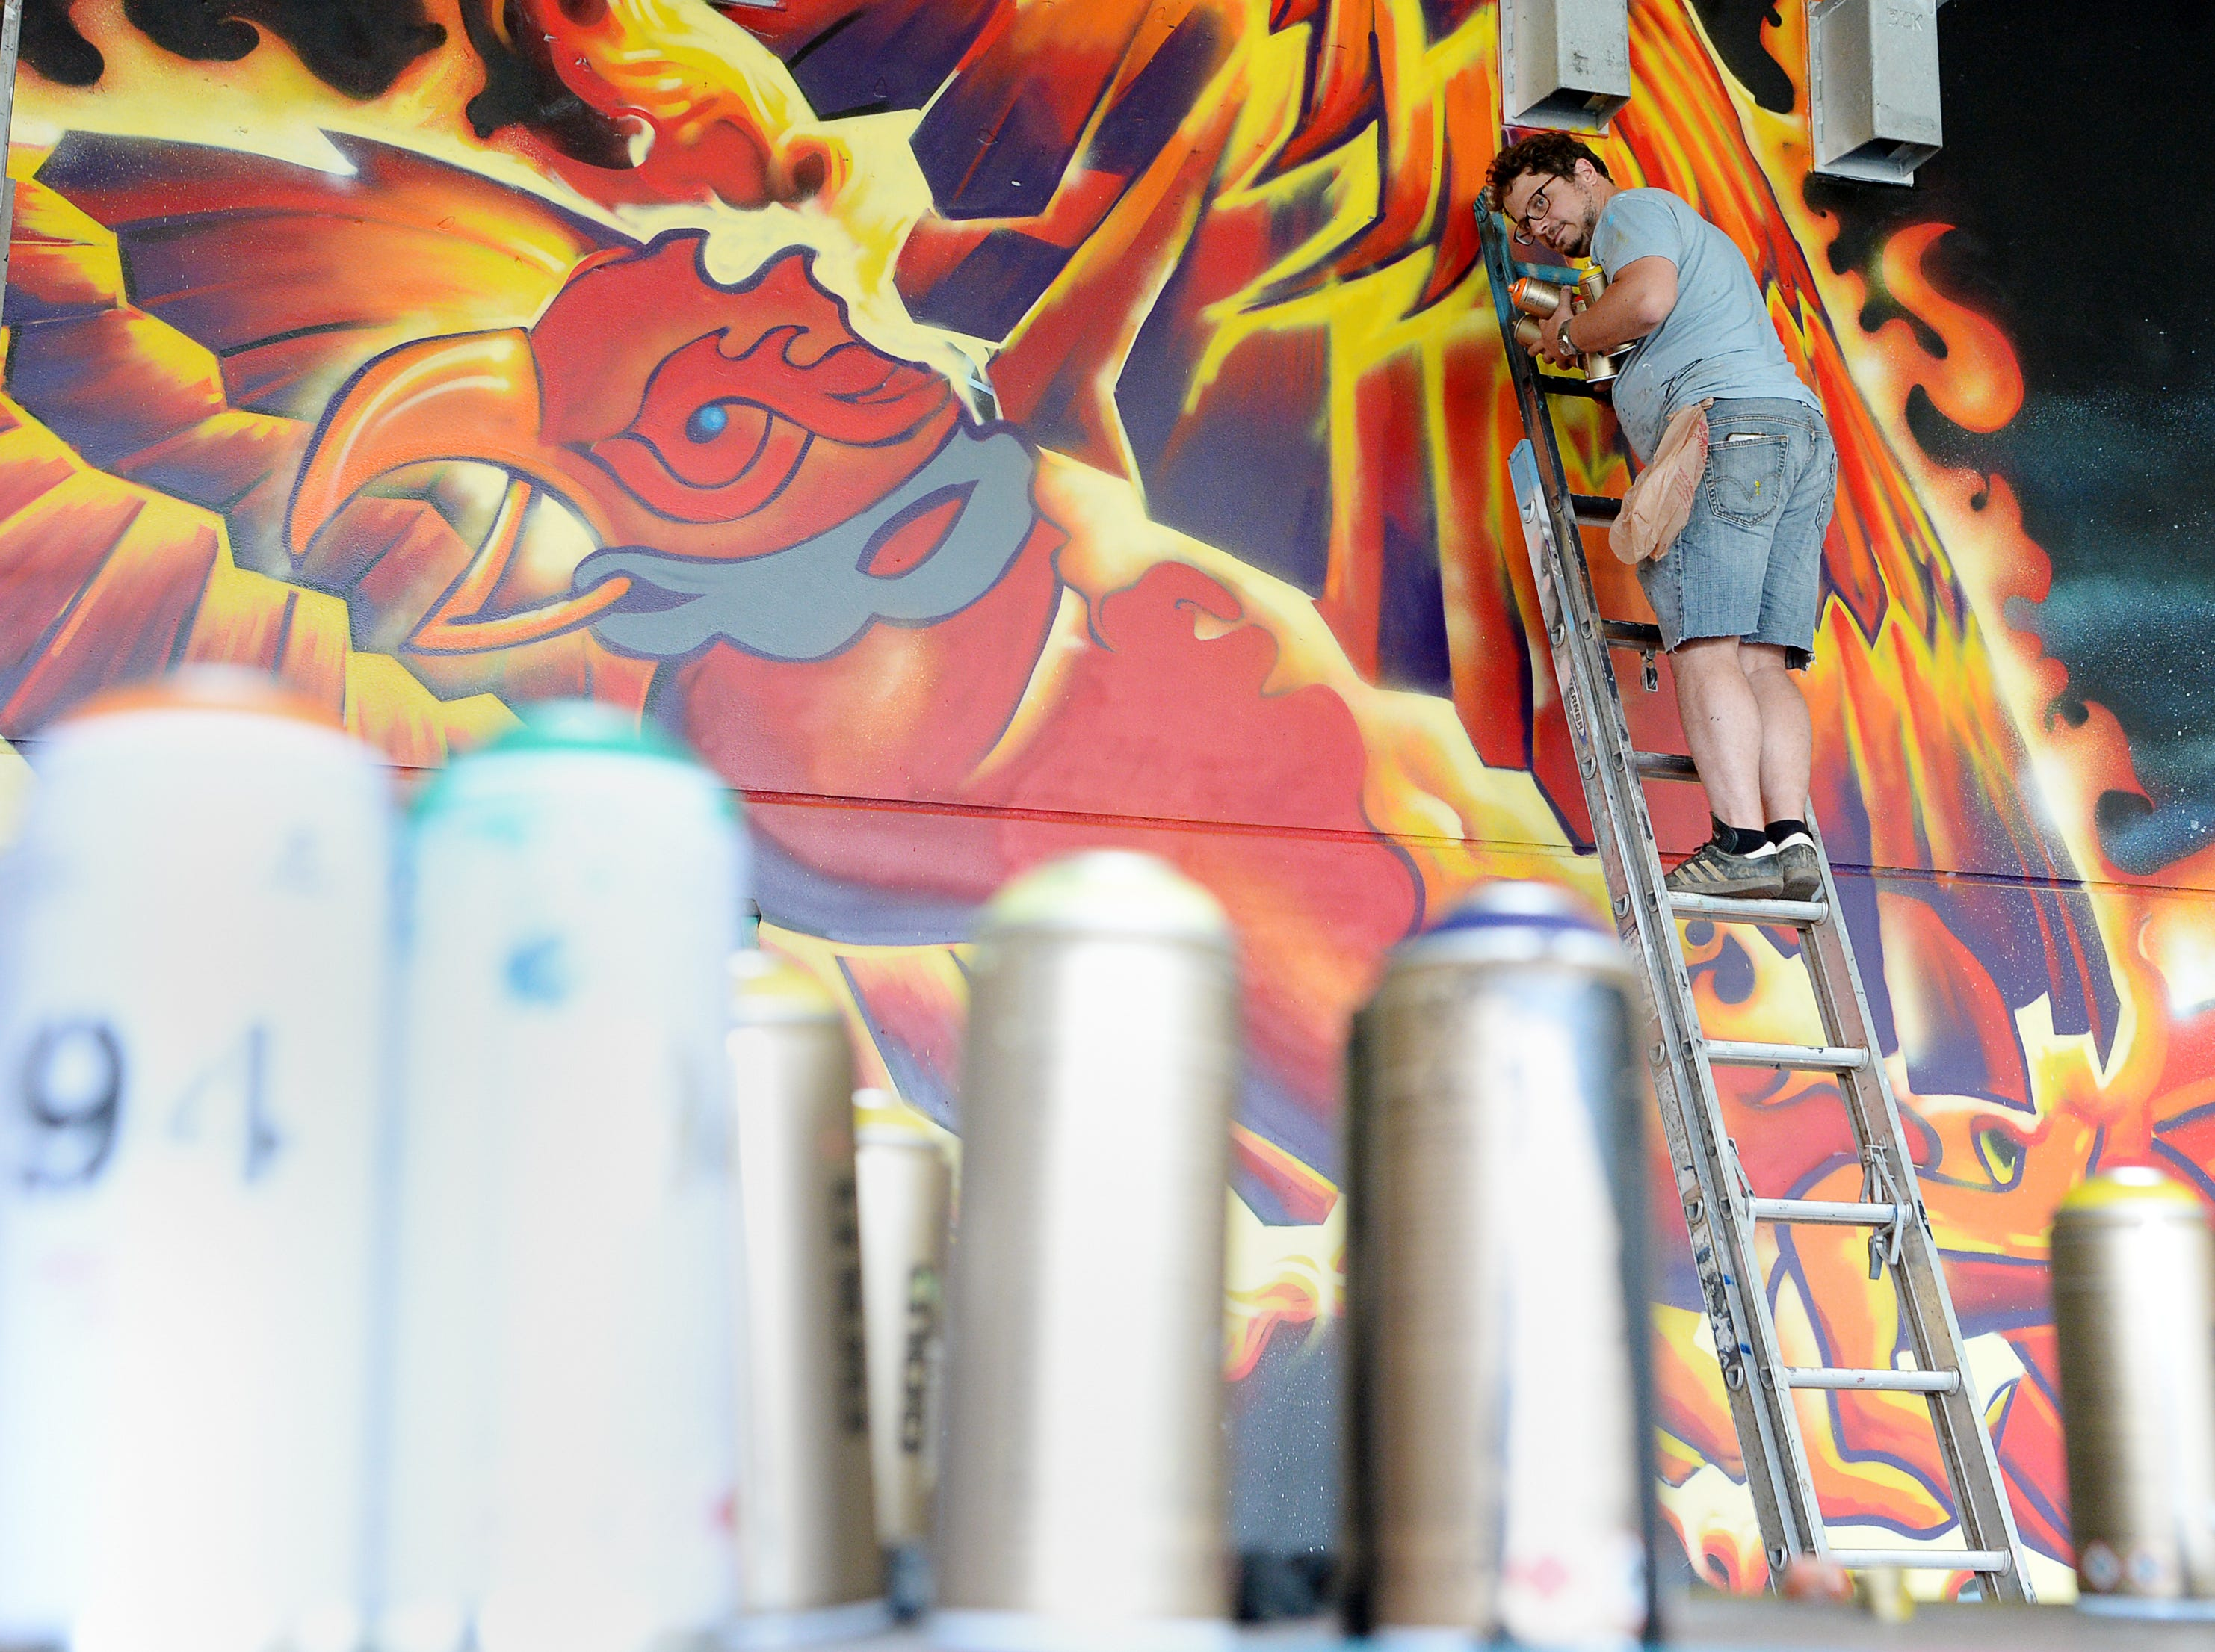 Kurt Thaesler descends a ladder as he works on a mural at Mission Hospital's cancer center parking garage August 25, 2018.